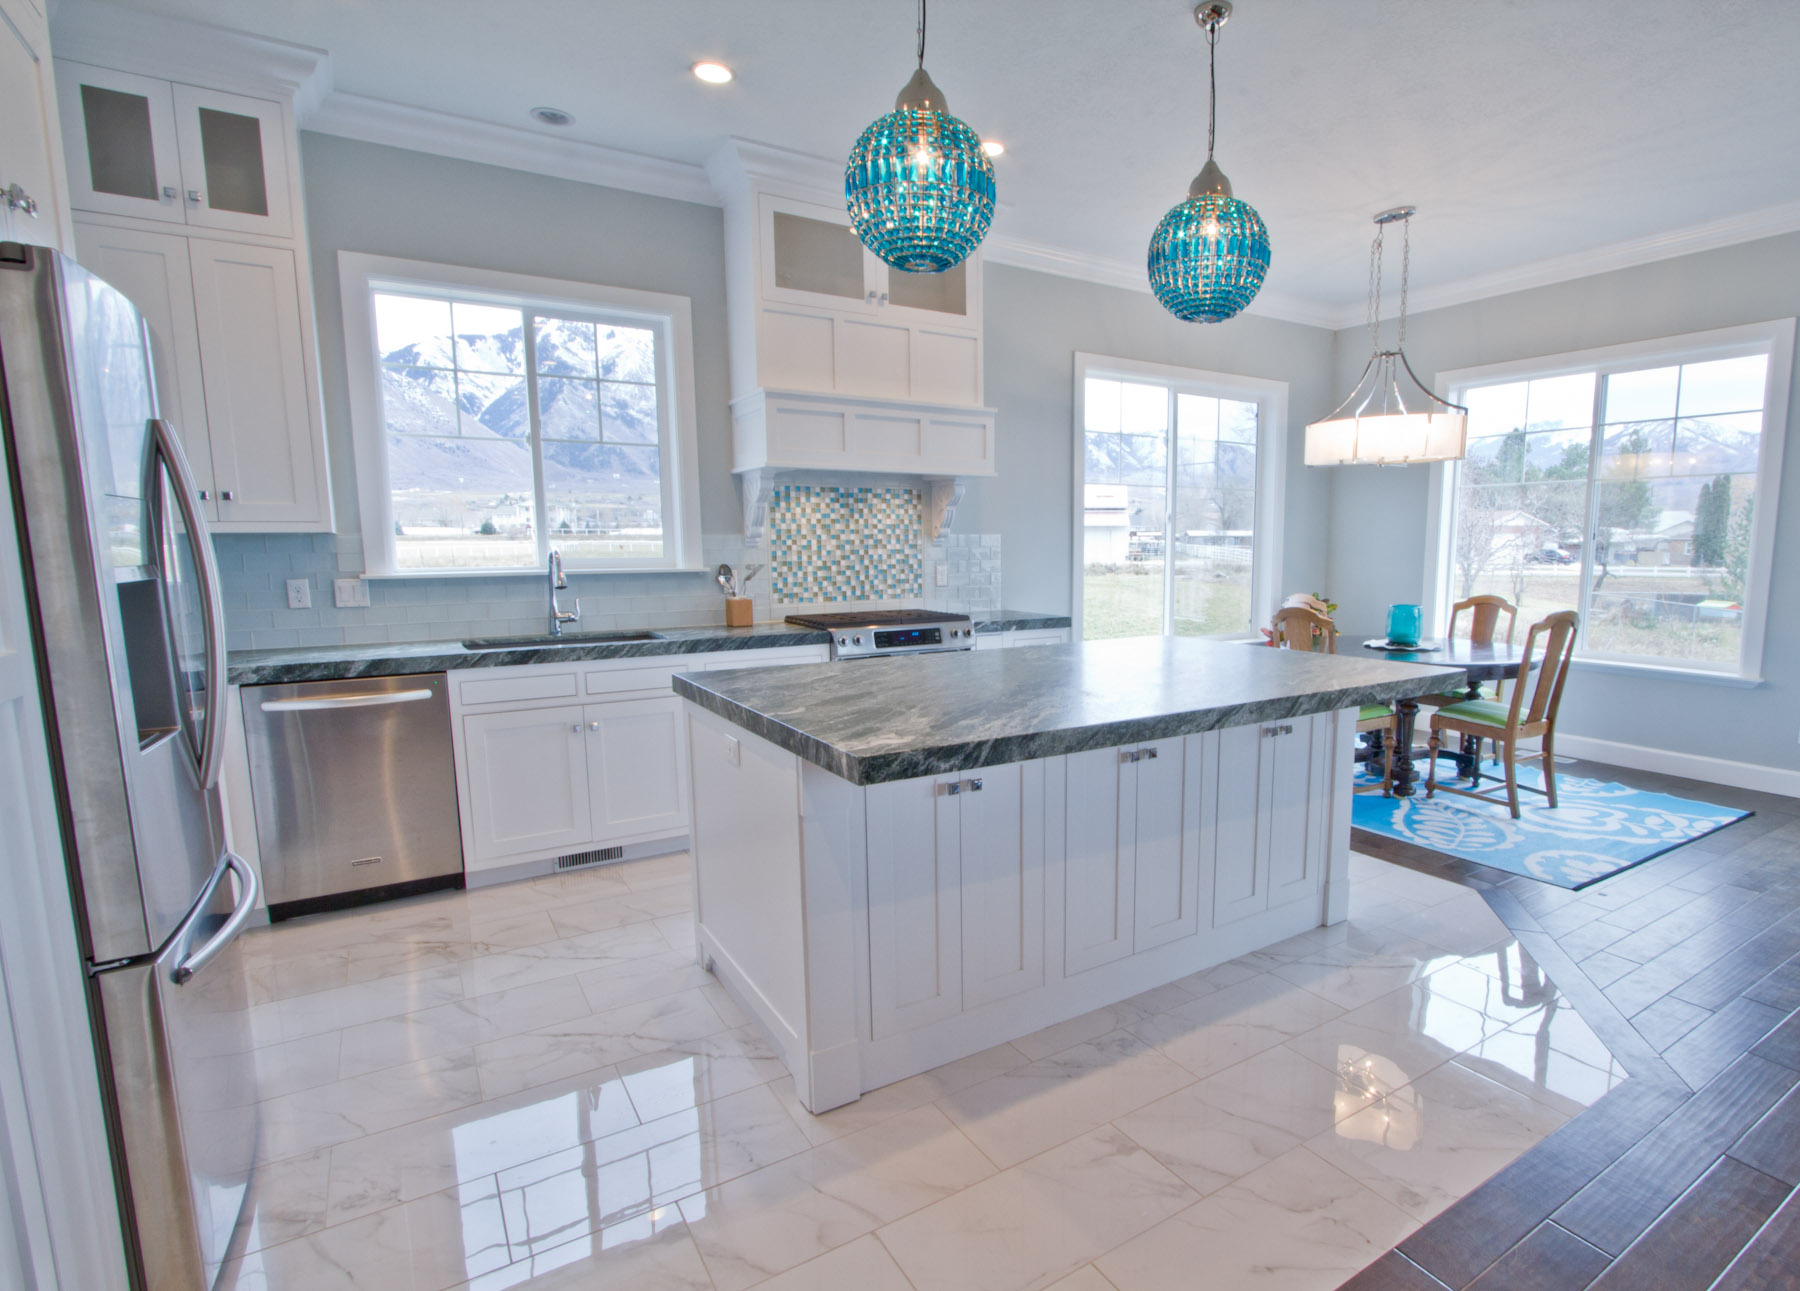 awesome Coastal Kitchen Decor #6: How To Design A Coastal Kitchen